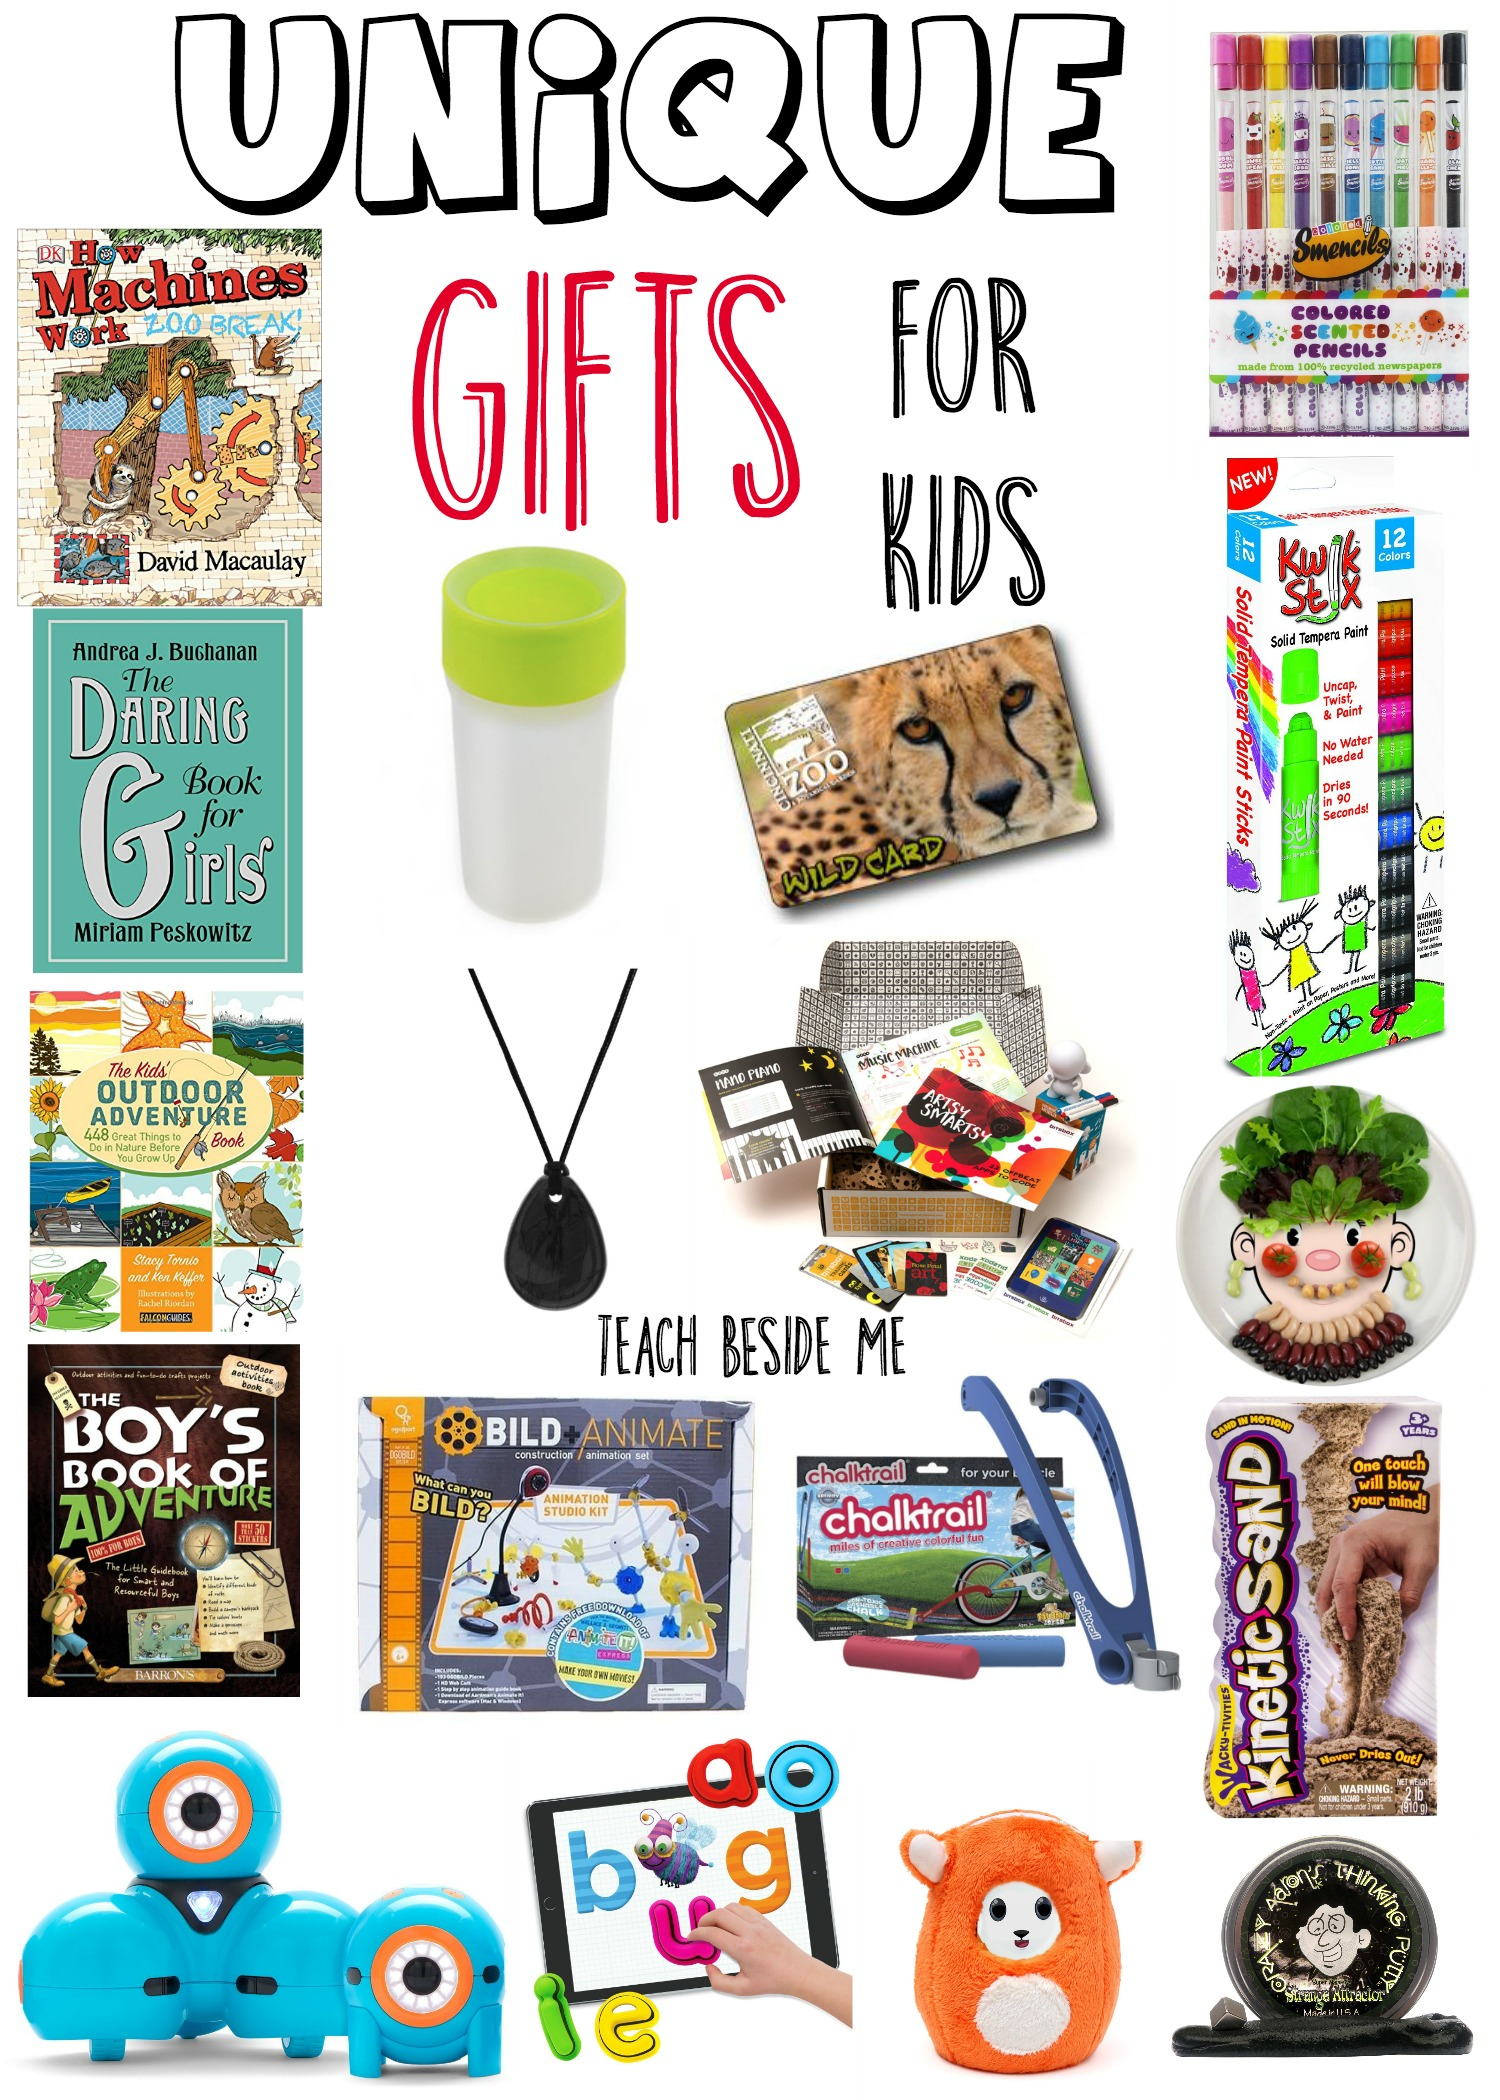 Unique Gifts for Kids - Teach Beside Me